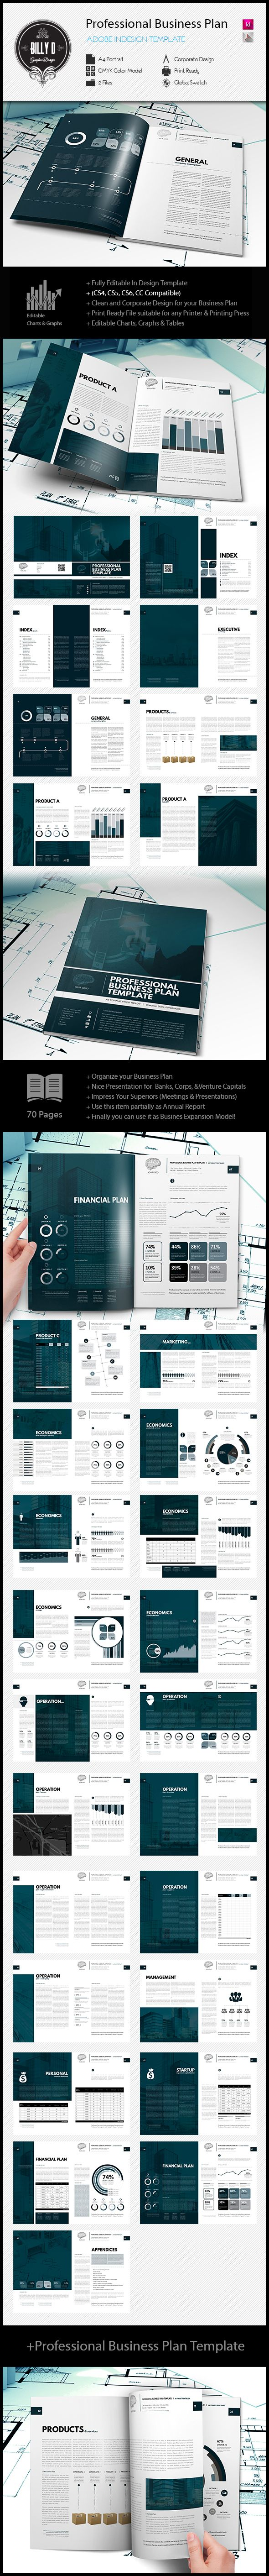 Professional business plan template the business plan consists of professional business plan template the business plan consists of a narrative and several financial worksheets the narrative template is the body of the wajeb Image collections